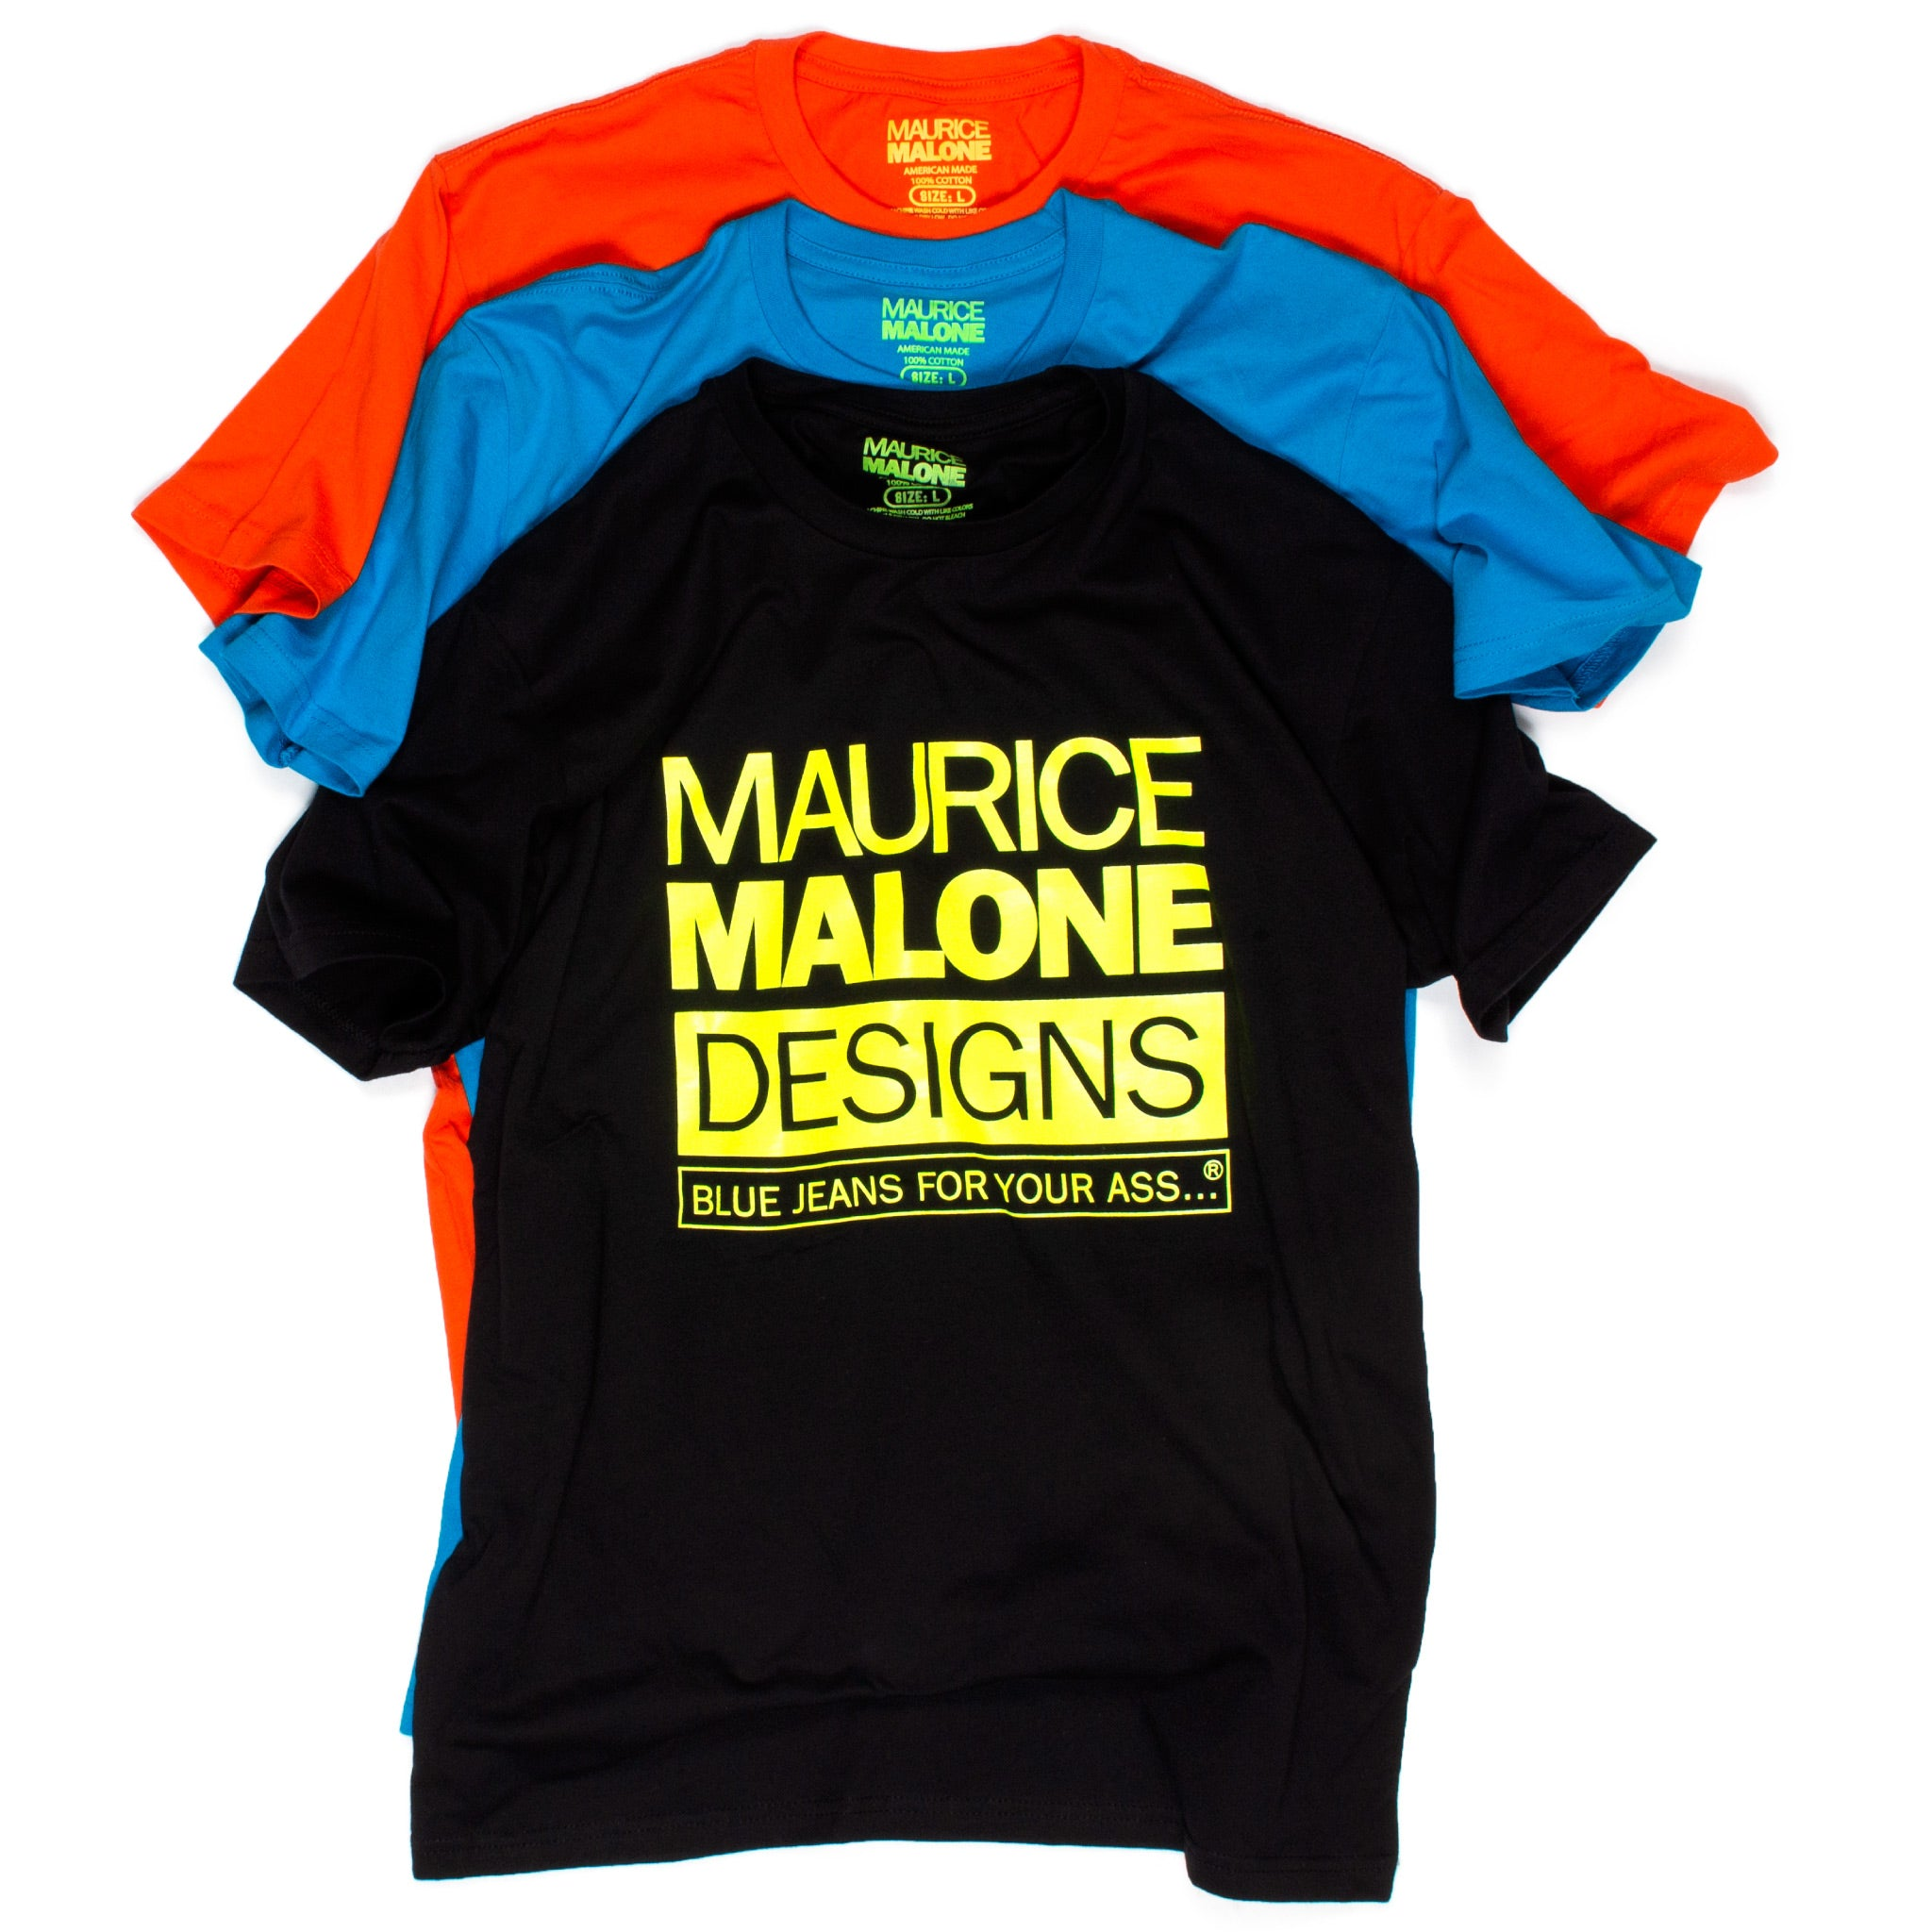 Colors of the maurice Malone iconic 90's Hip Hop logo t-shirt with fluorescent print